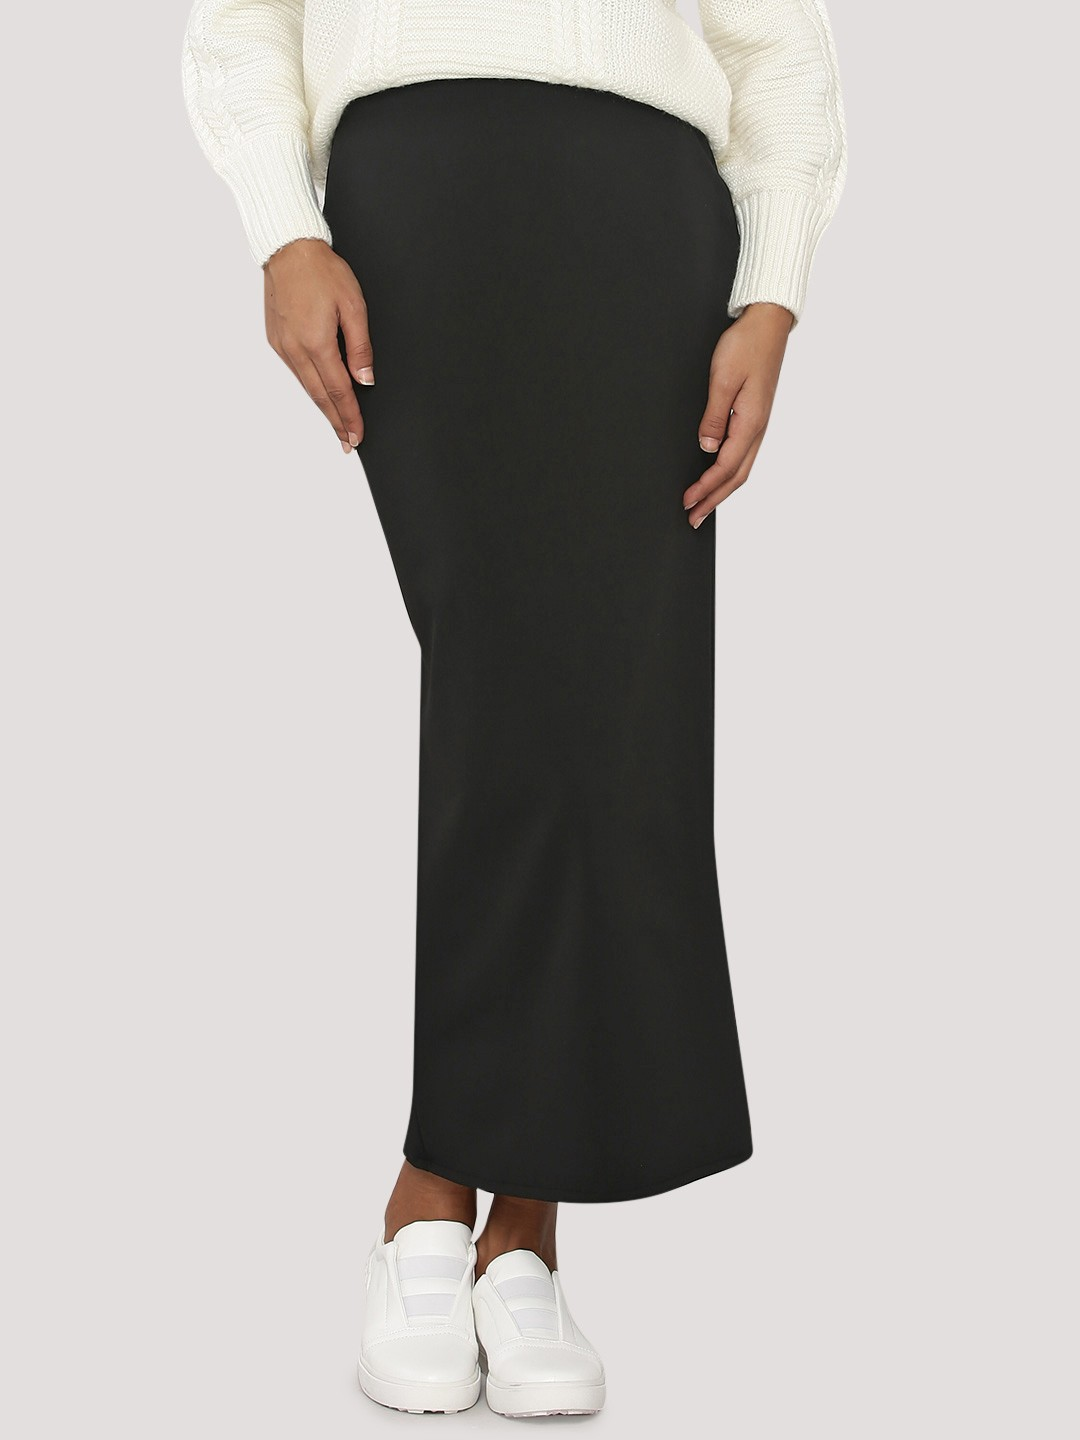 Buy KOOVS Maxi Pencil Skirt For Women - Women's Black Pencil ...